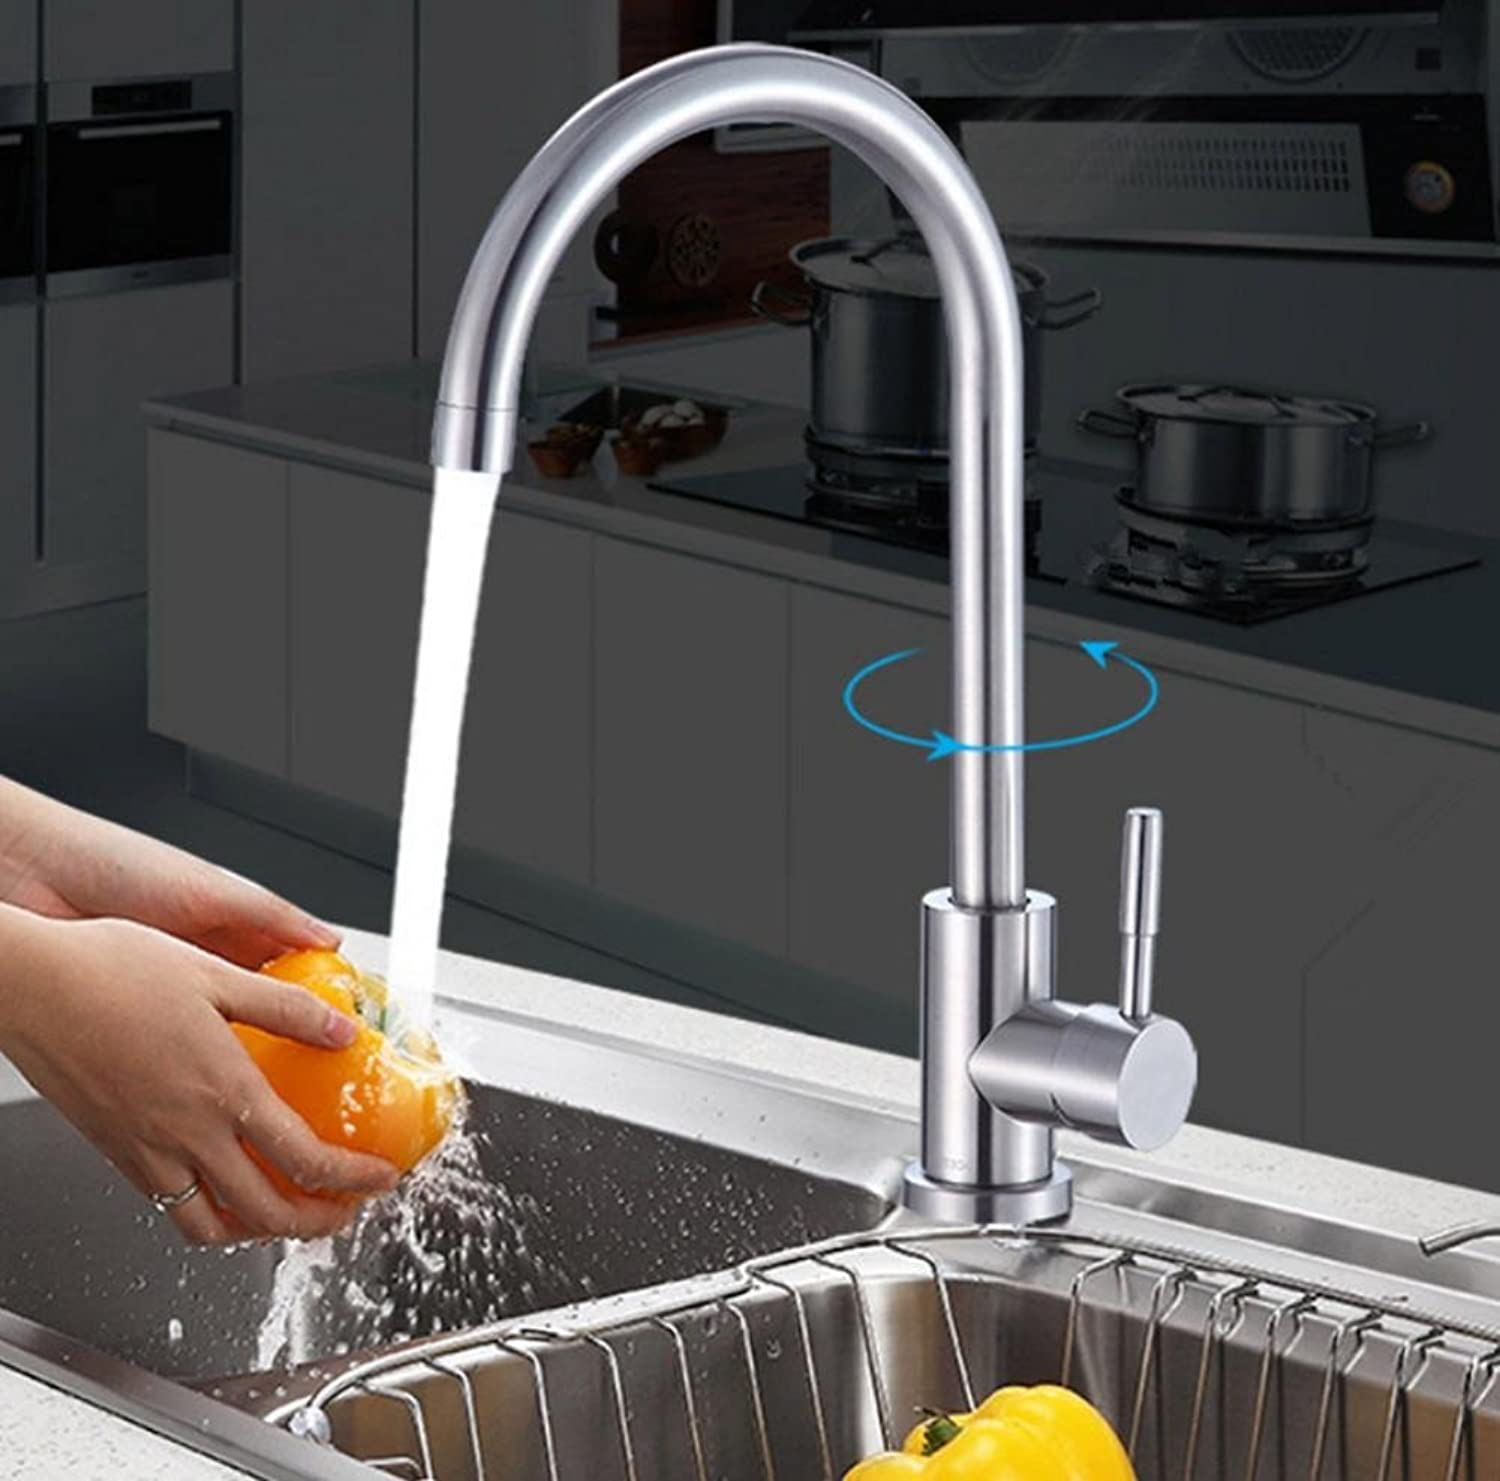 Stainless Steel Kitchen Faucet Explosion-Proof Anti-Rust Hot and Cold Faucet